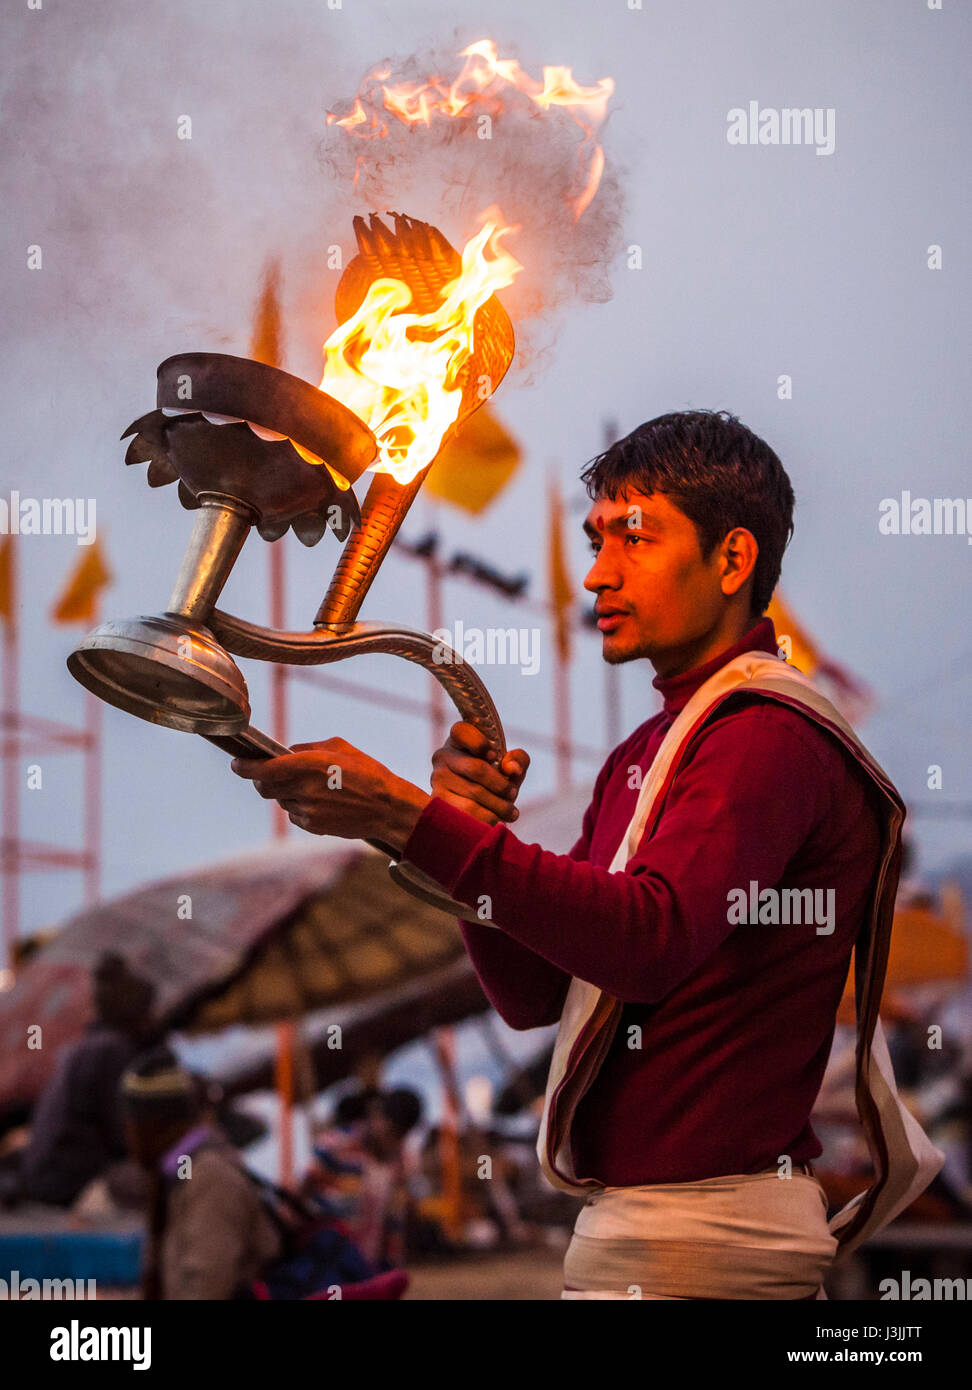 A Hindu priest on the shores of the Ganges / Ganga river in Varanasi, India performs a ceremony (puja) with an oil - Stock Image